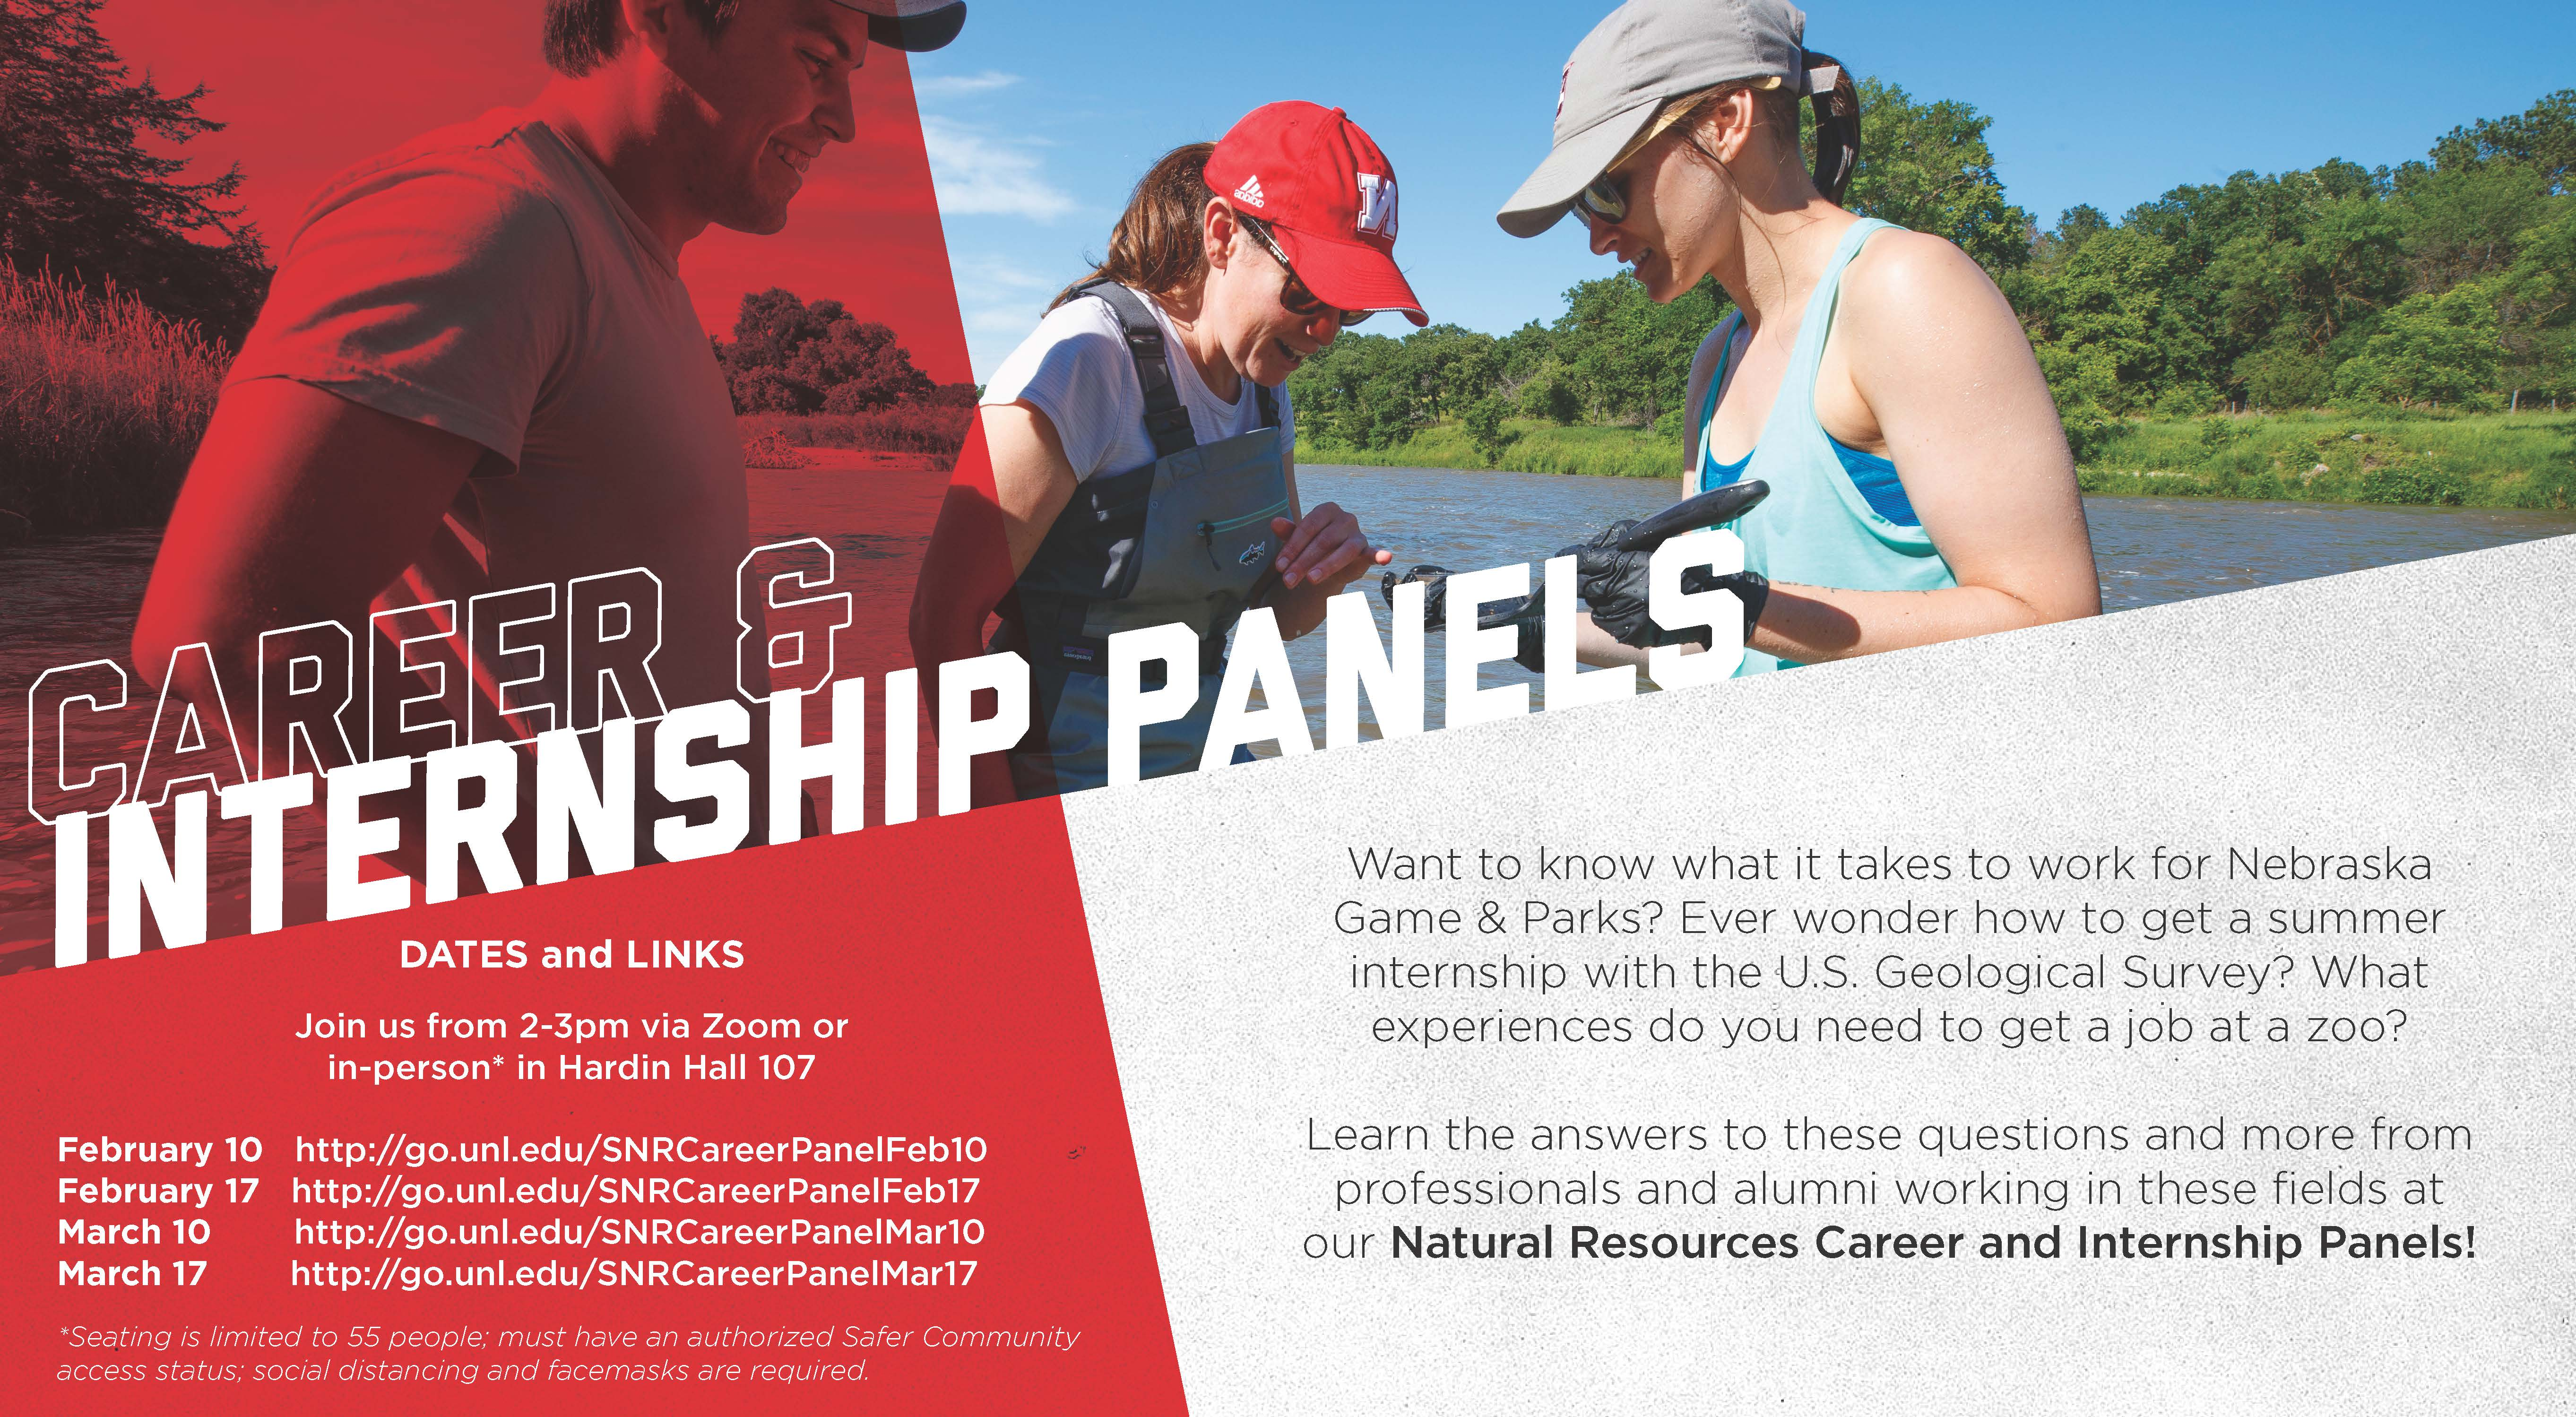 On Feb. 17, the panelists will include representatives from the Wyoming Game & Fish Dept, YMCA Camp Kitaki and Nebraska Game and Parks Commission.